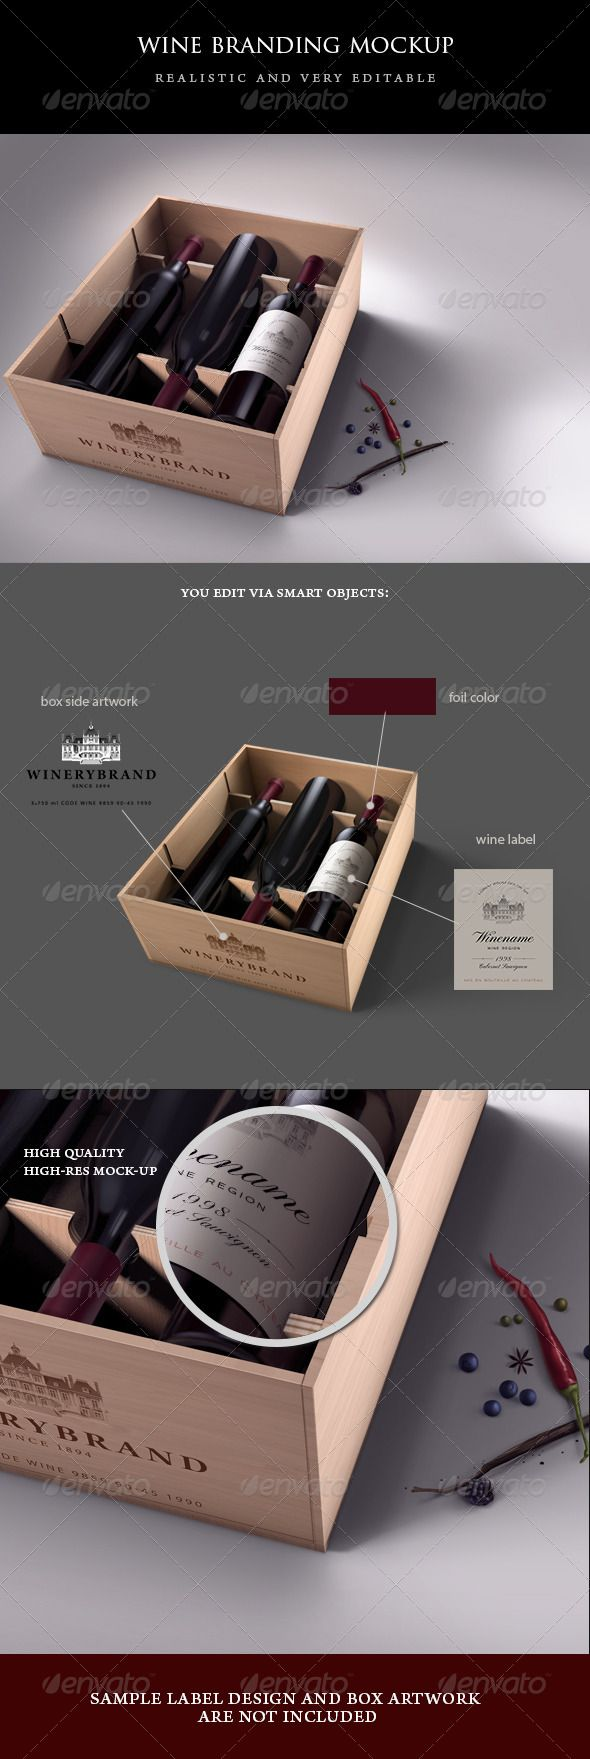 Wine Case Mock-up  #GraphicRiver         Editable realistic mock-up showing wine label design and wine case branding. Some fruits typical for red wine race are placed